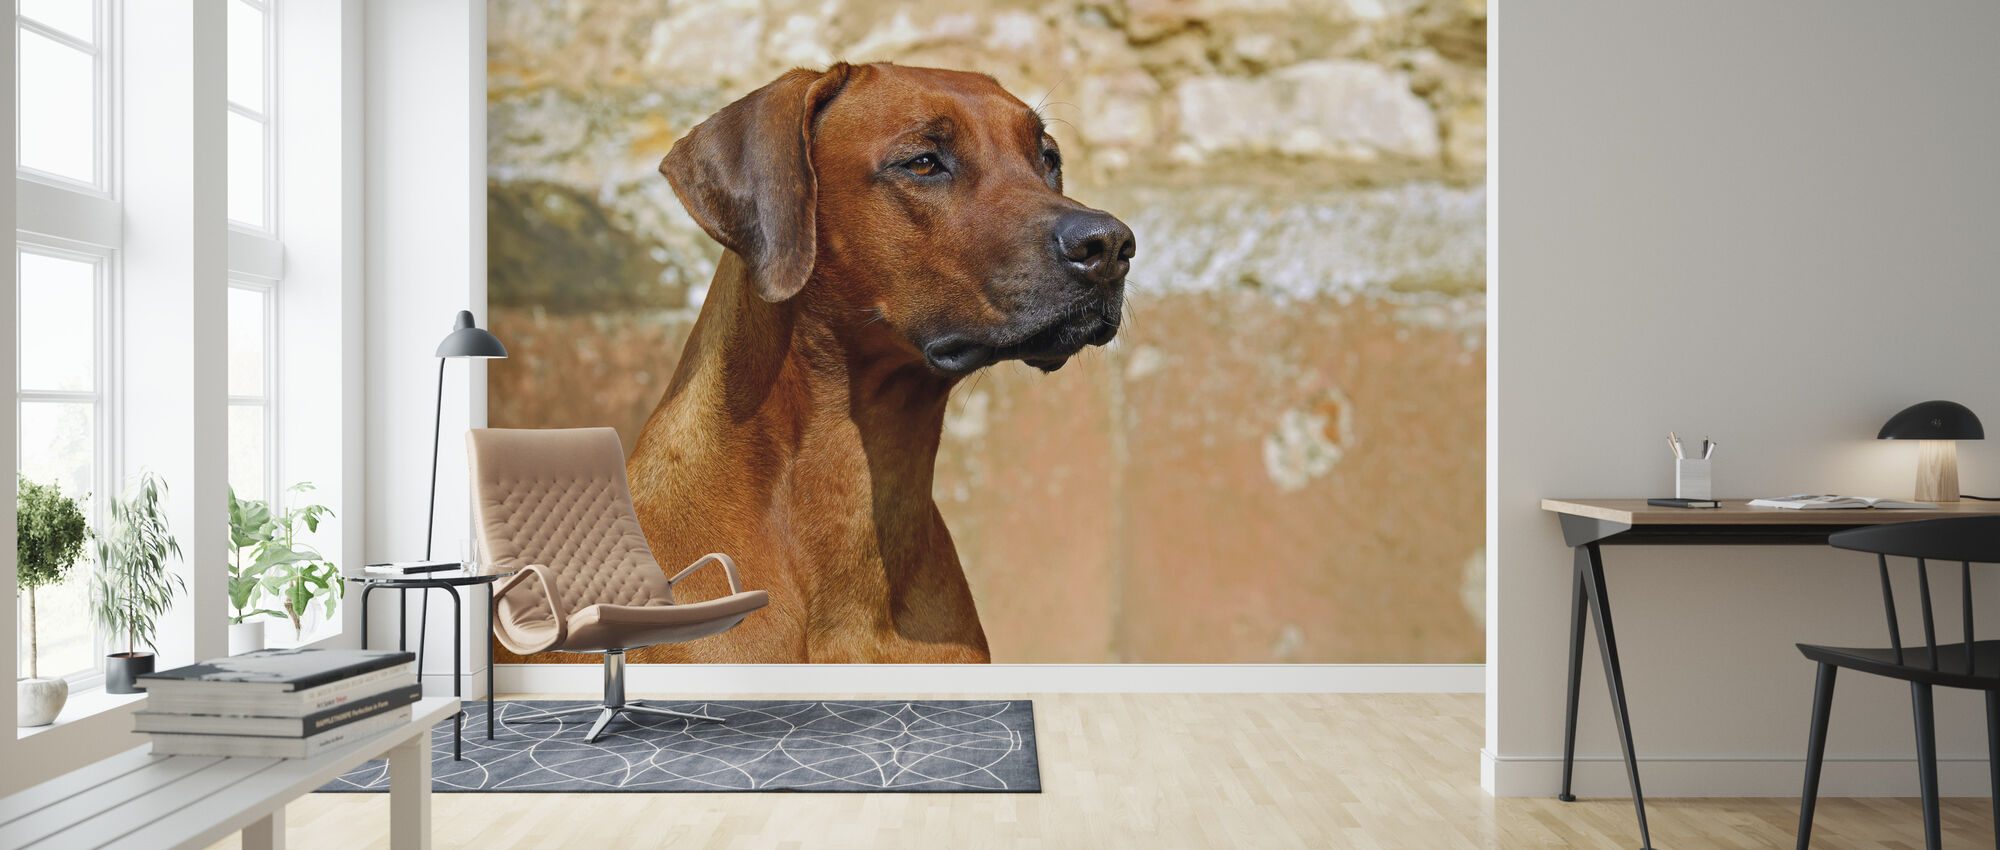 Hunting Dog - Wallpaper - Living Room